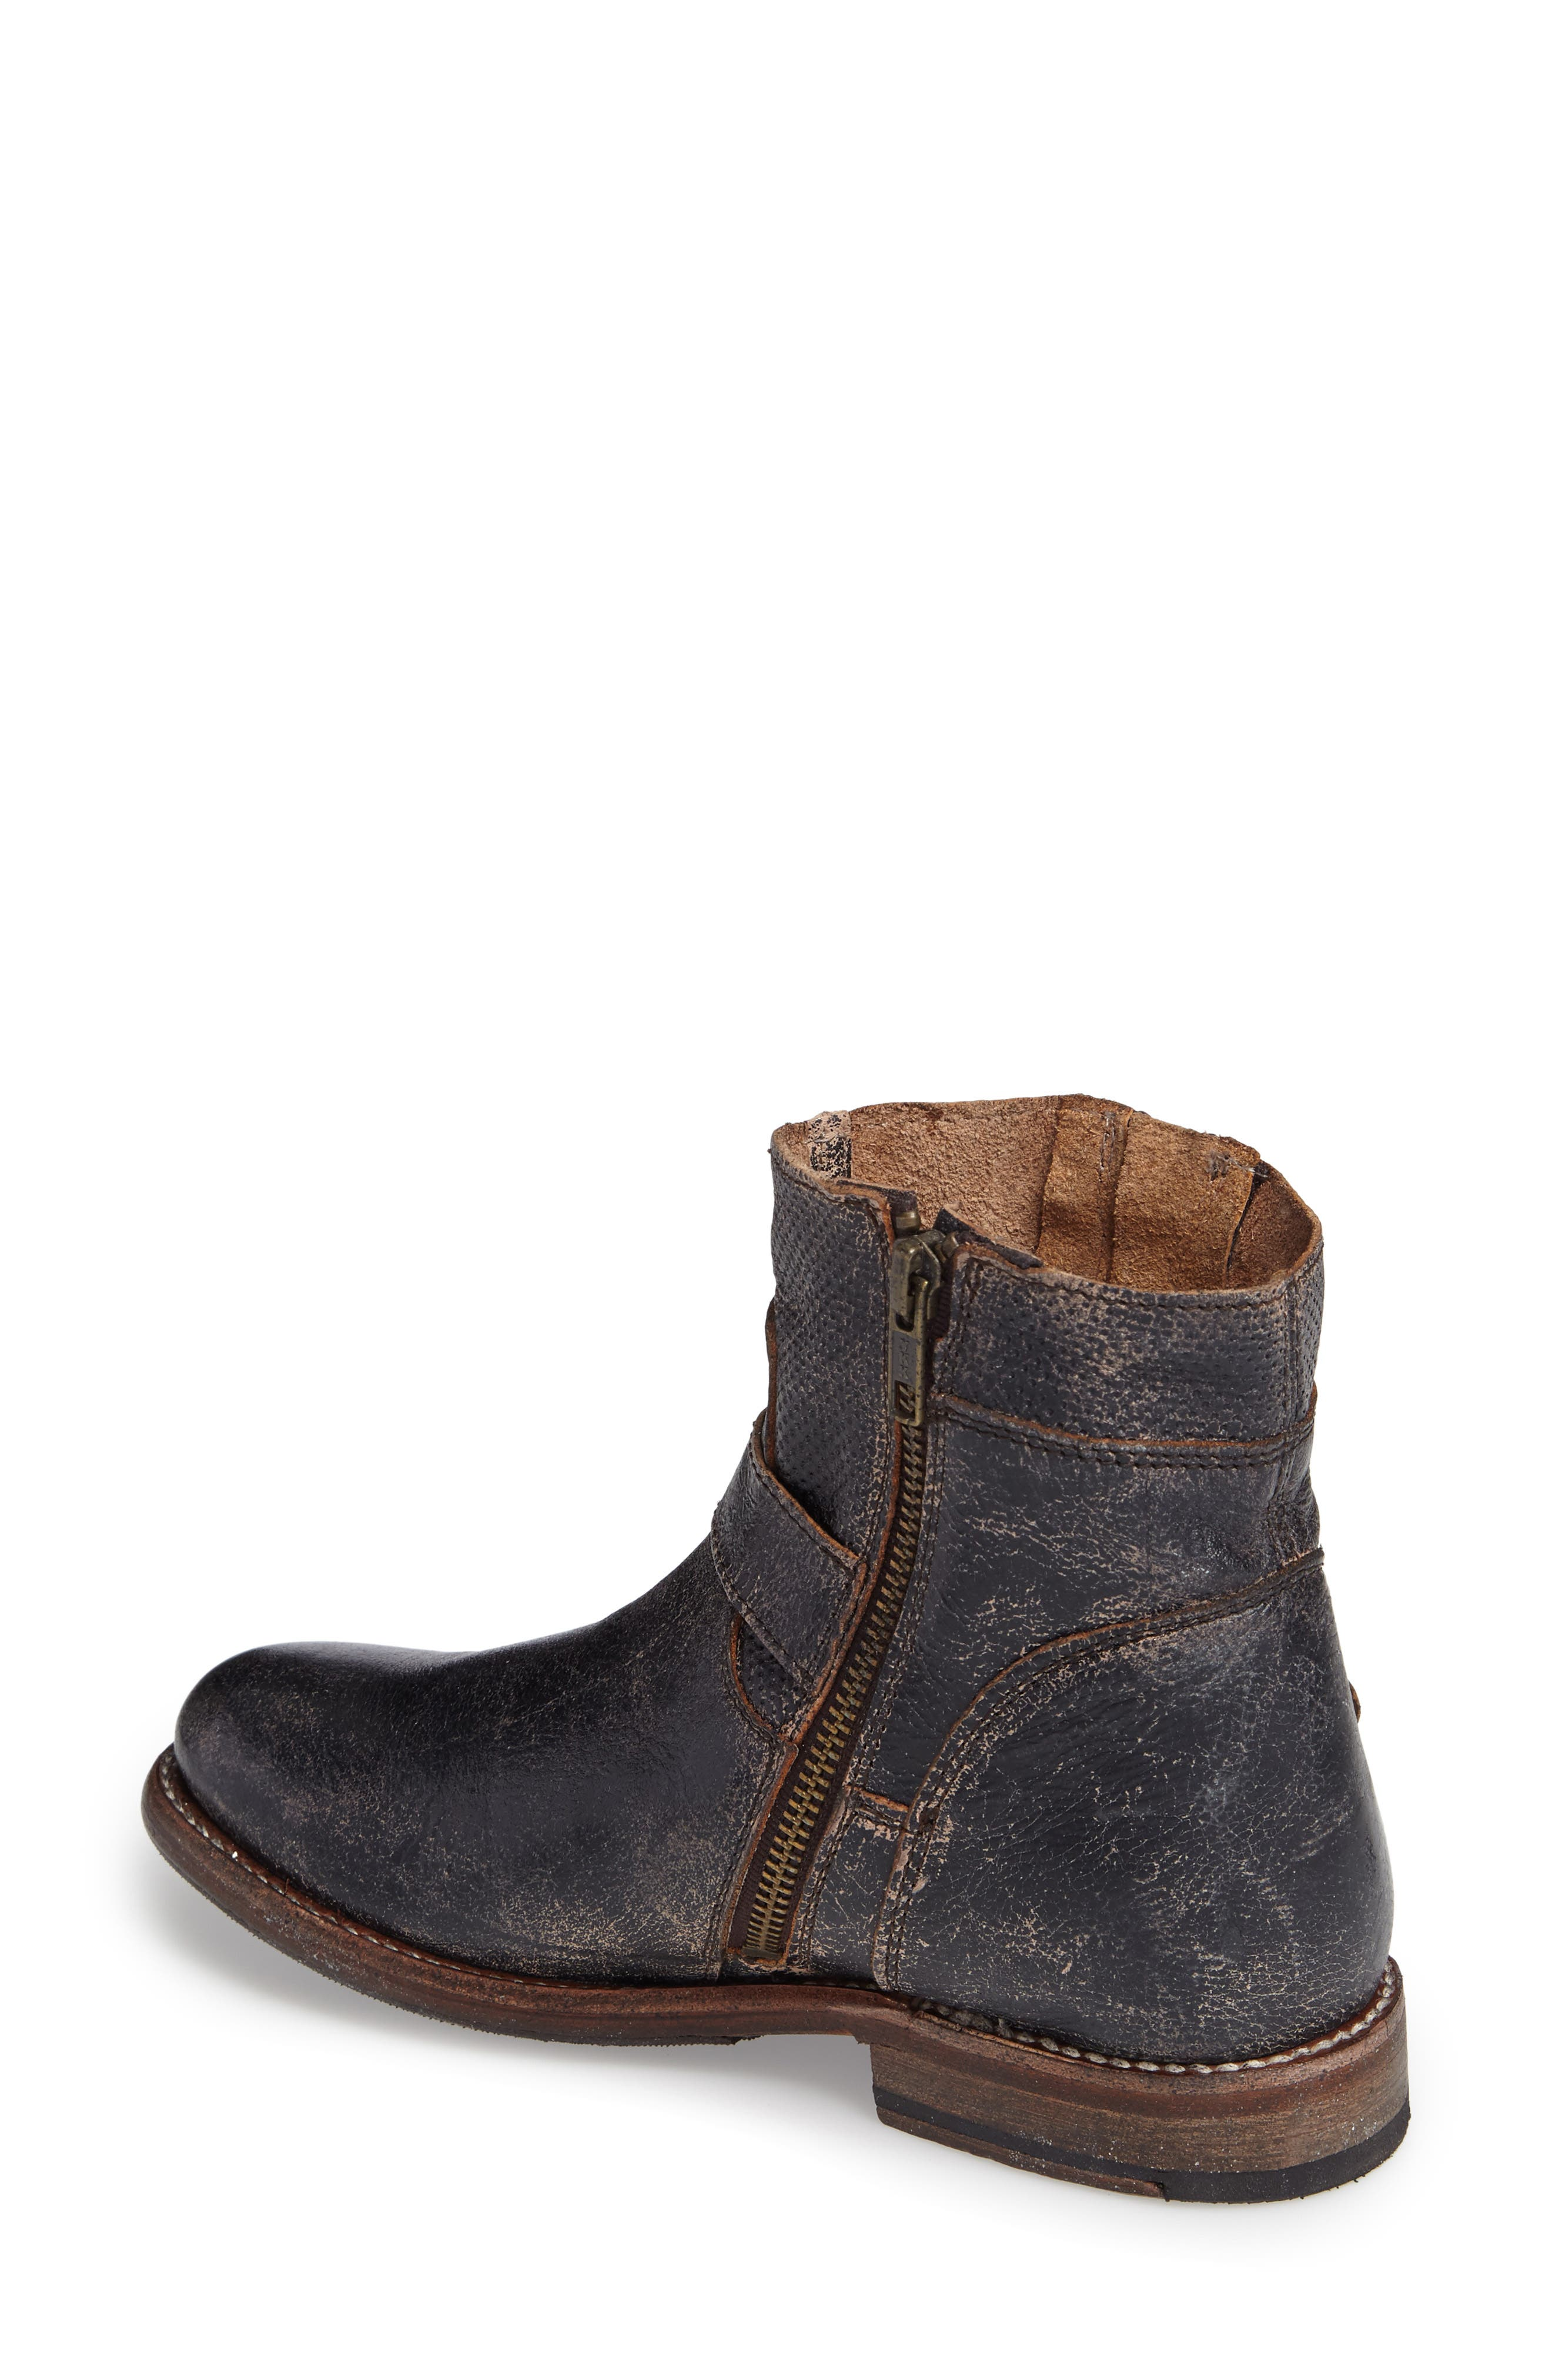 Becca Buckle Boot,                             Alternate thumbnail 2, color,                             008